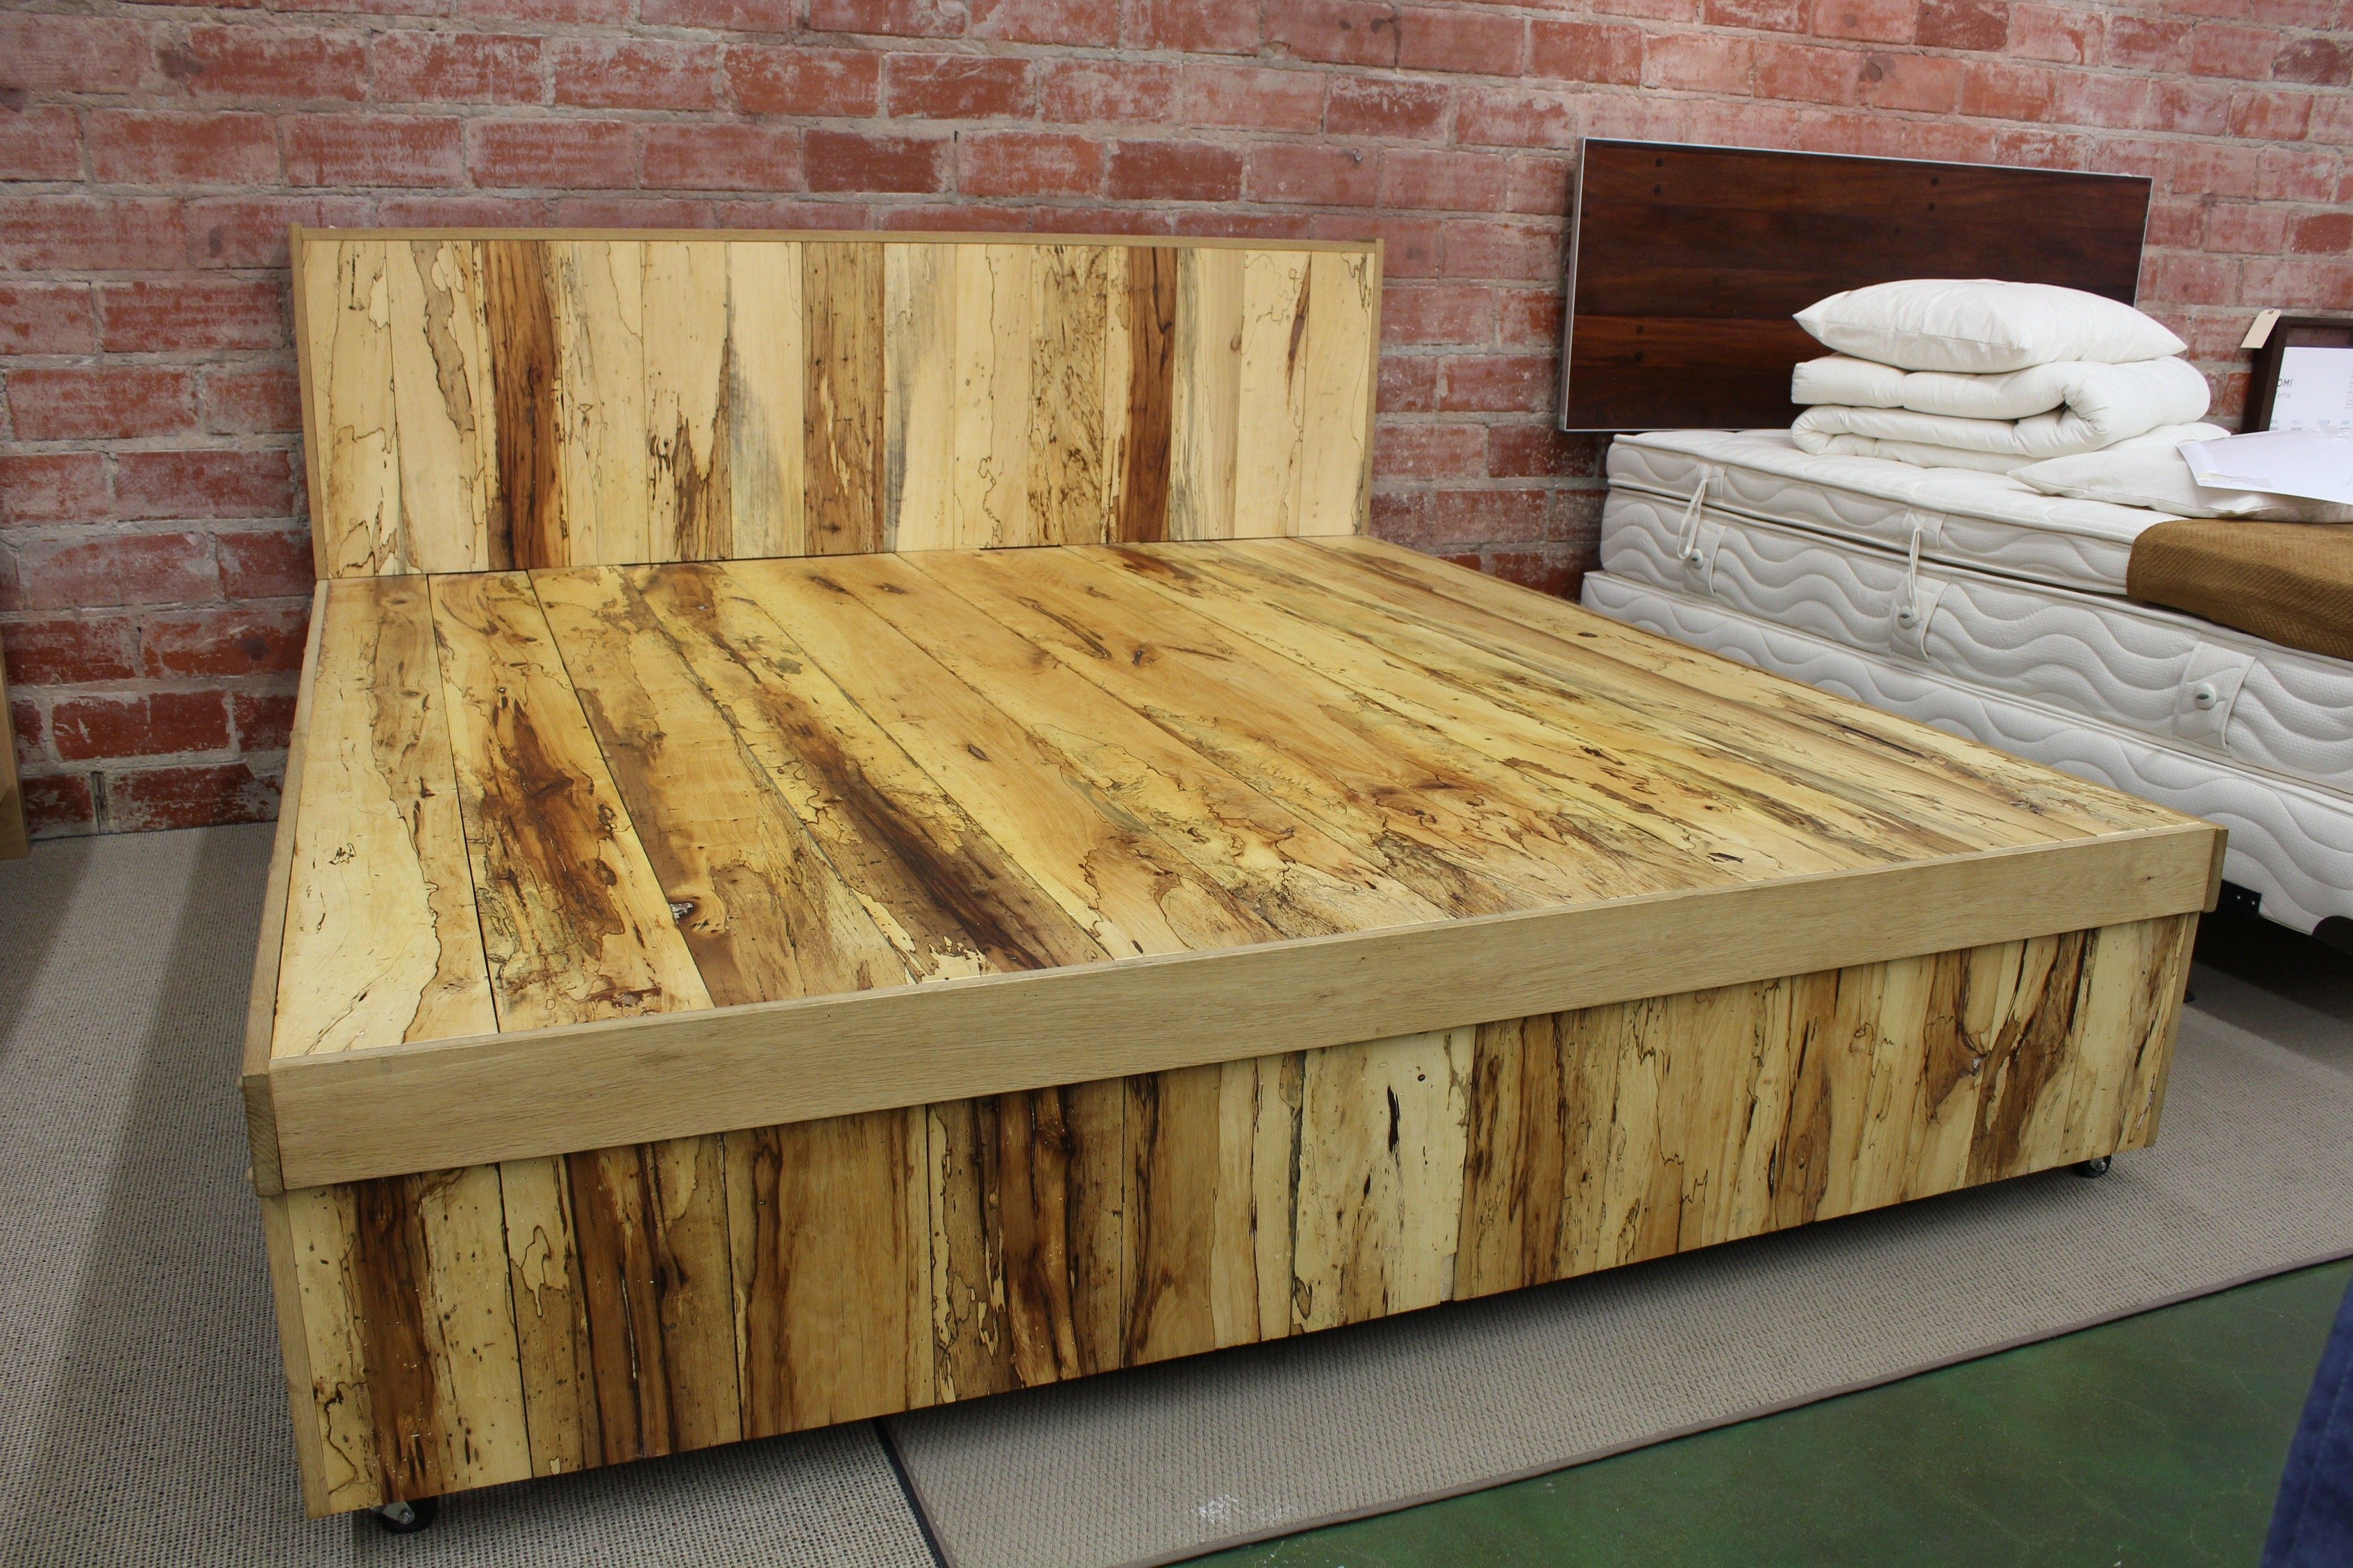 Natural Plank For Homemade King Frame With Storage Plus Exposed ...